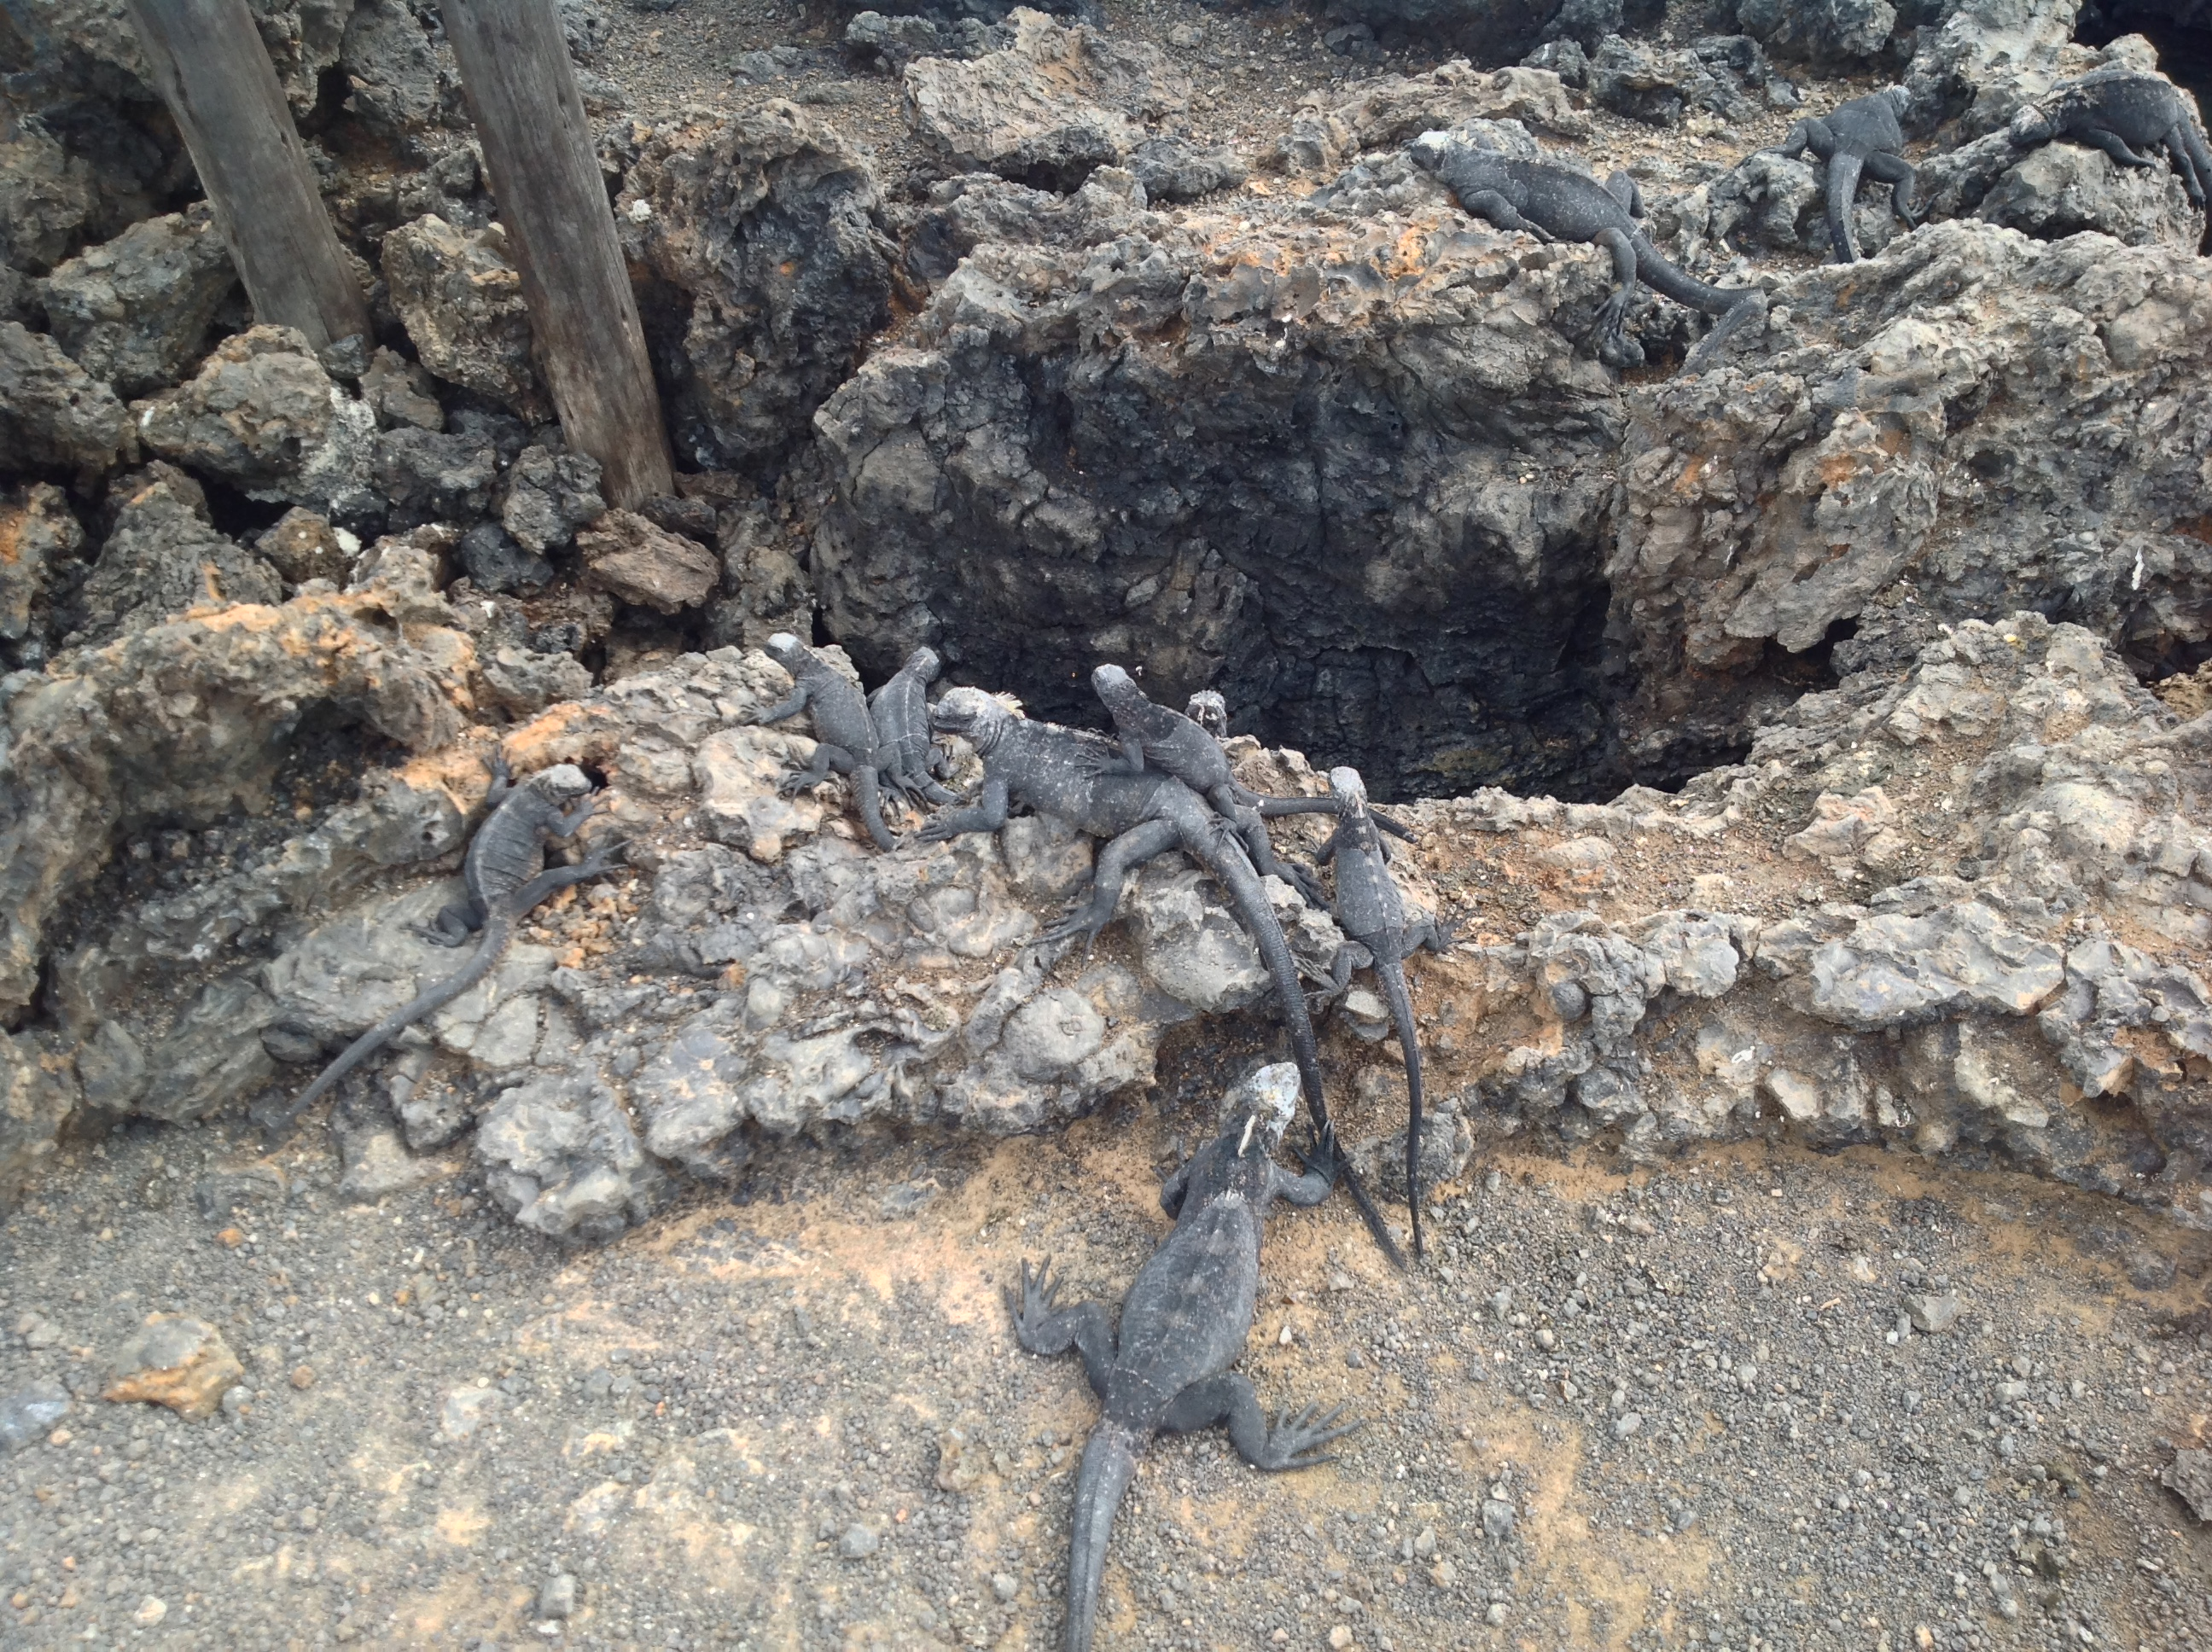 A few skittish juvenile marine iguanas hanging out near the trail.